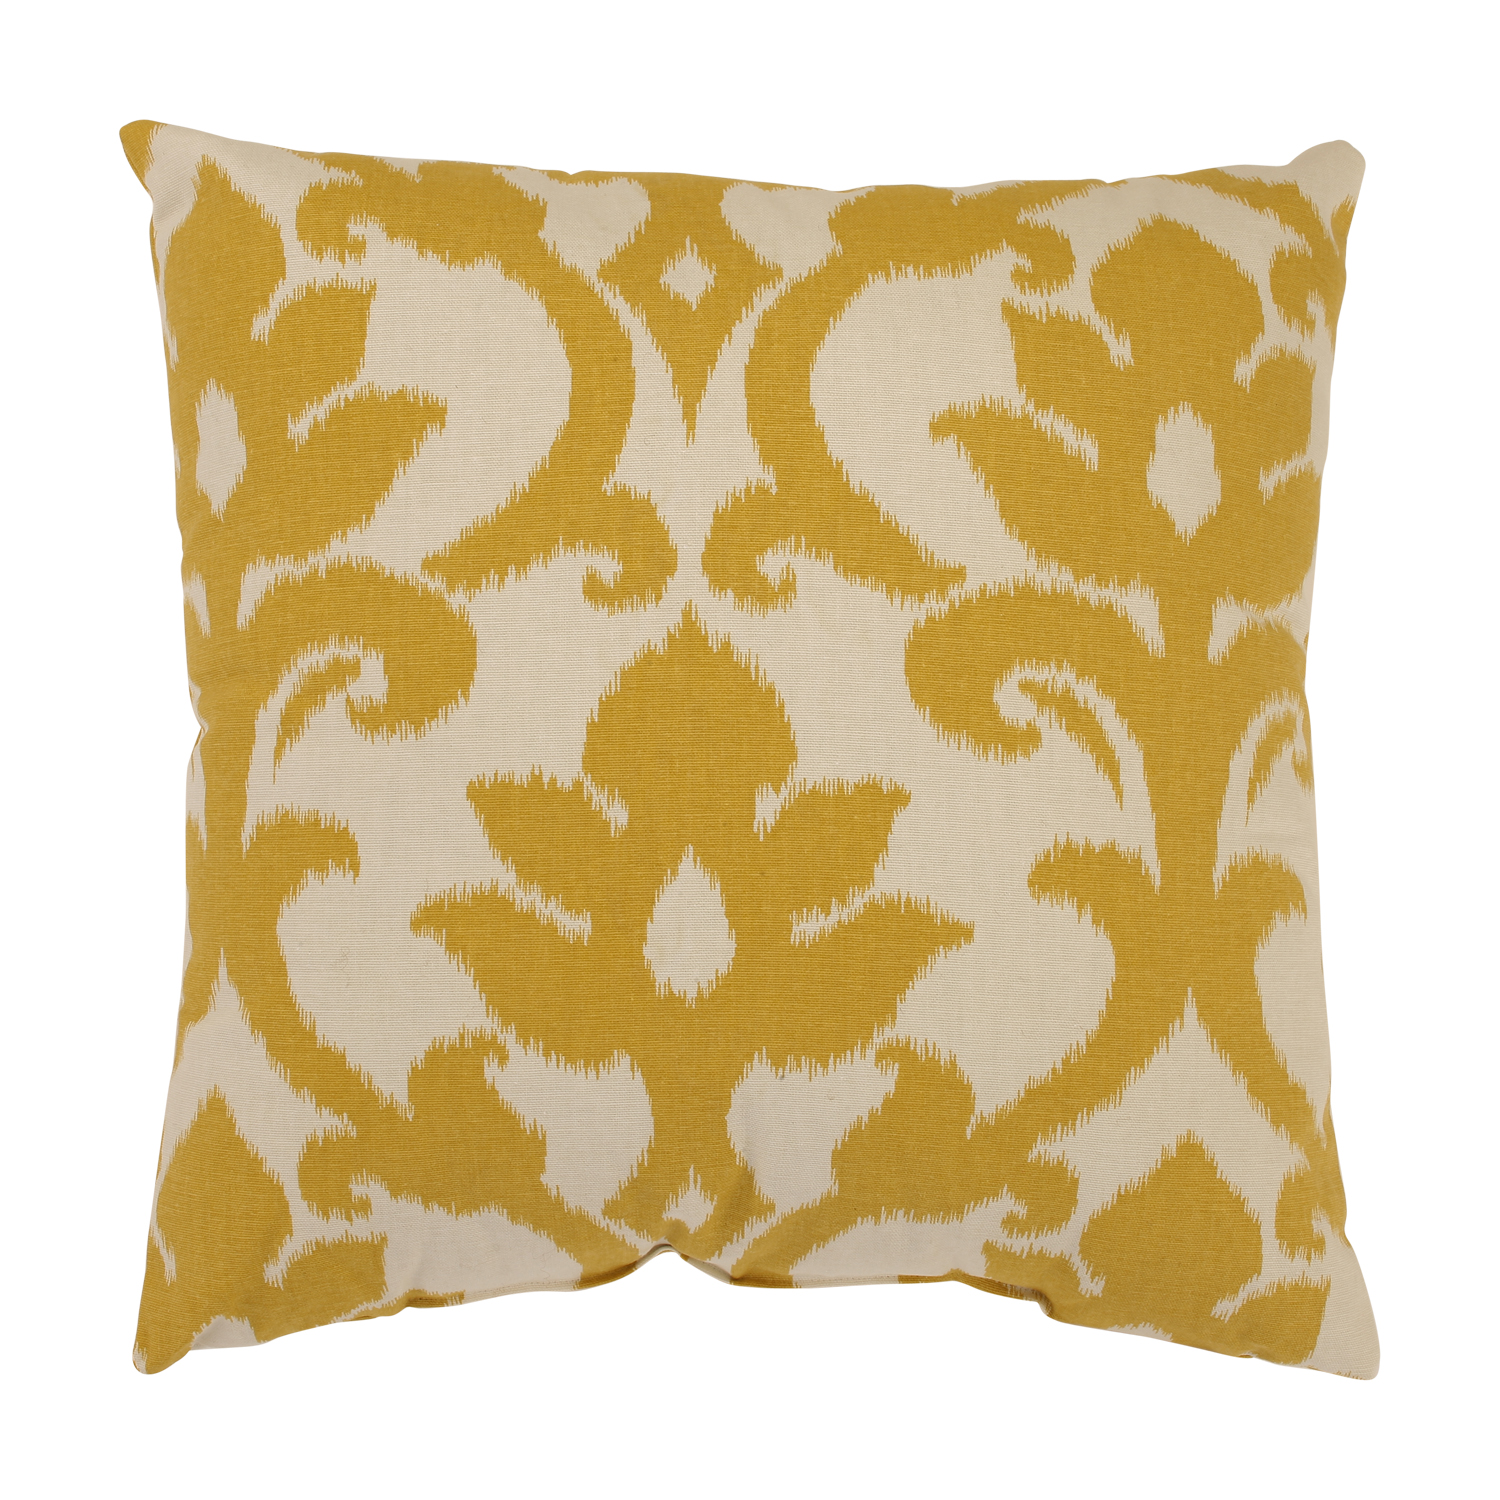 Gold Sequin Throw Pillows | Gold Throw Pillows | Charcoal Throw Pillows